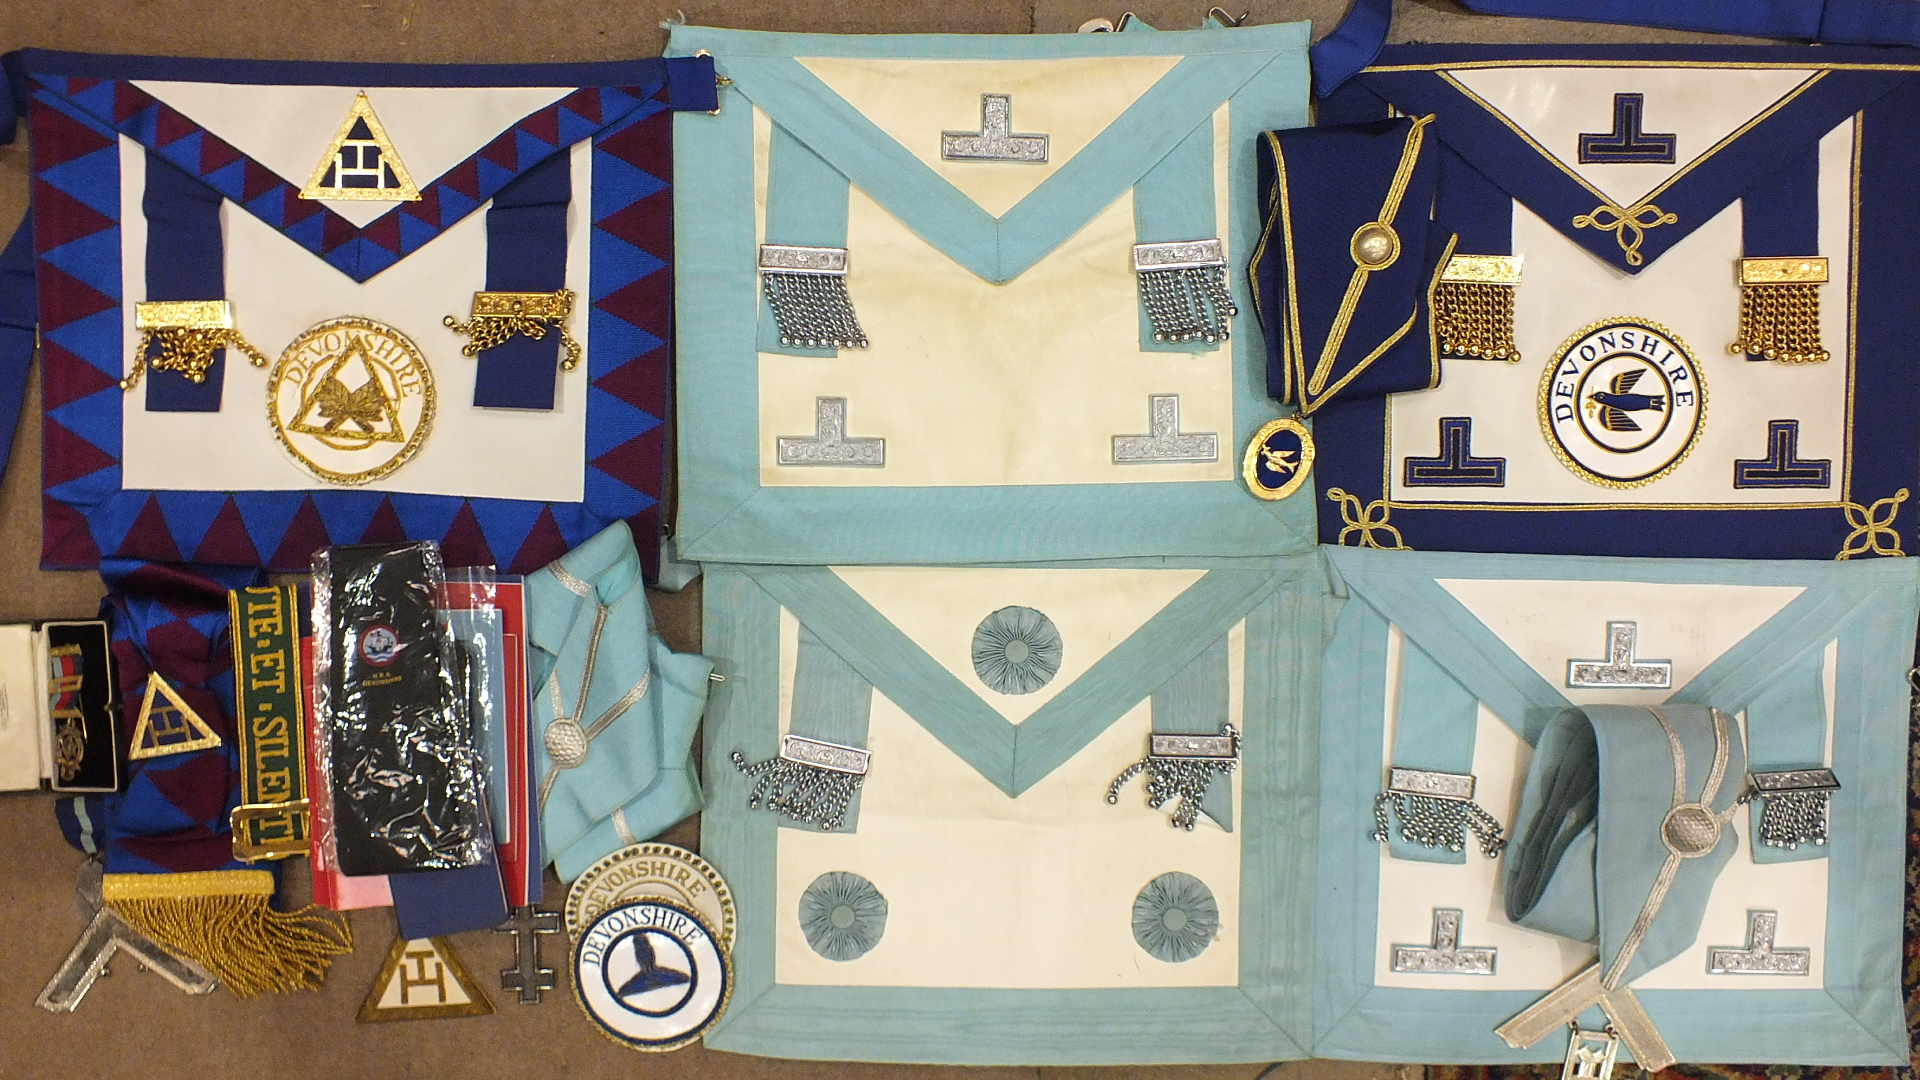 Lot 184 - Masonic, a Province of Devonshire Deacons undress apron, collar and jewel, together with a